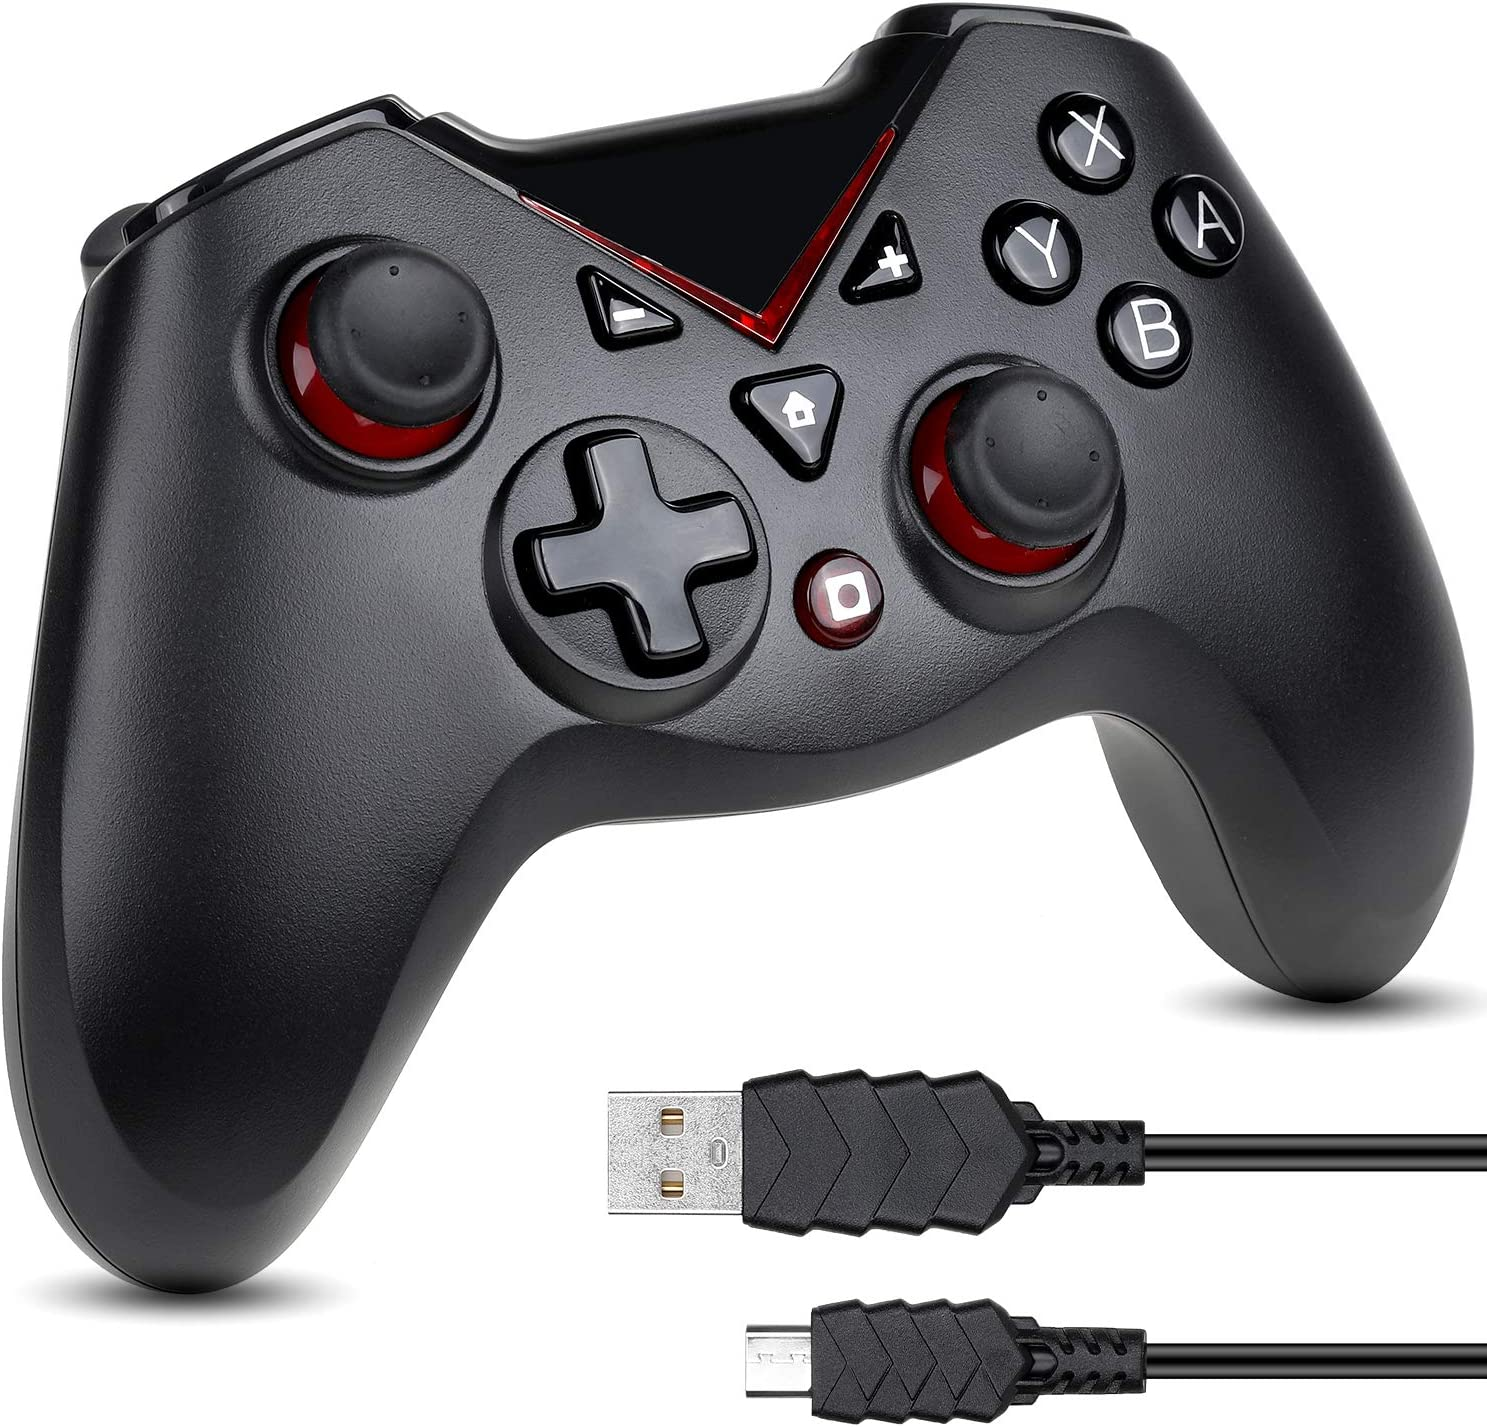 Zacro Mando Controlador Inalámbrico Válido para Switch, Bluetooth Mando Joy Stick, Android,PC Negro